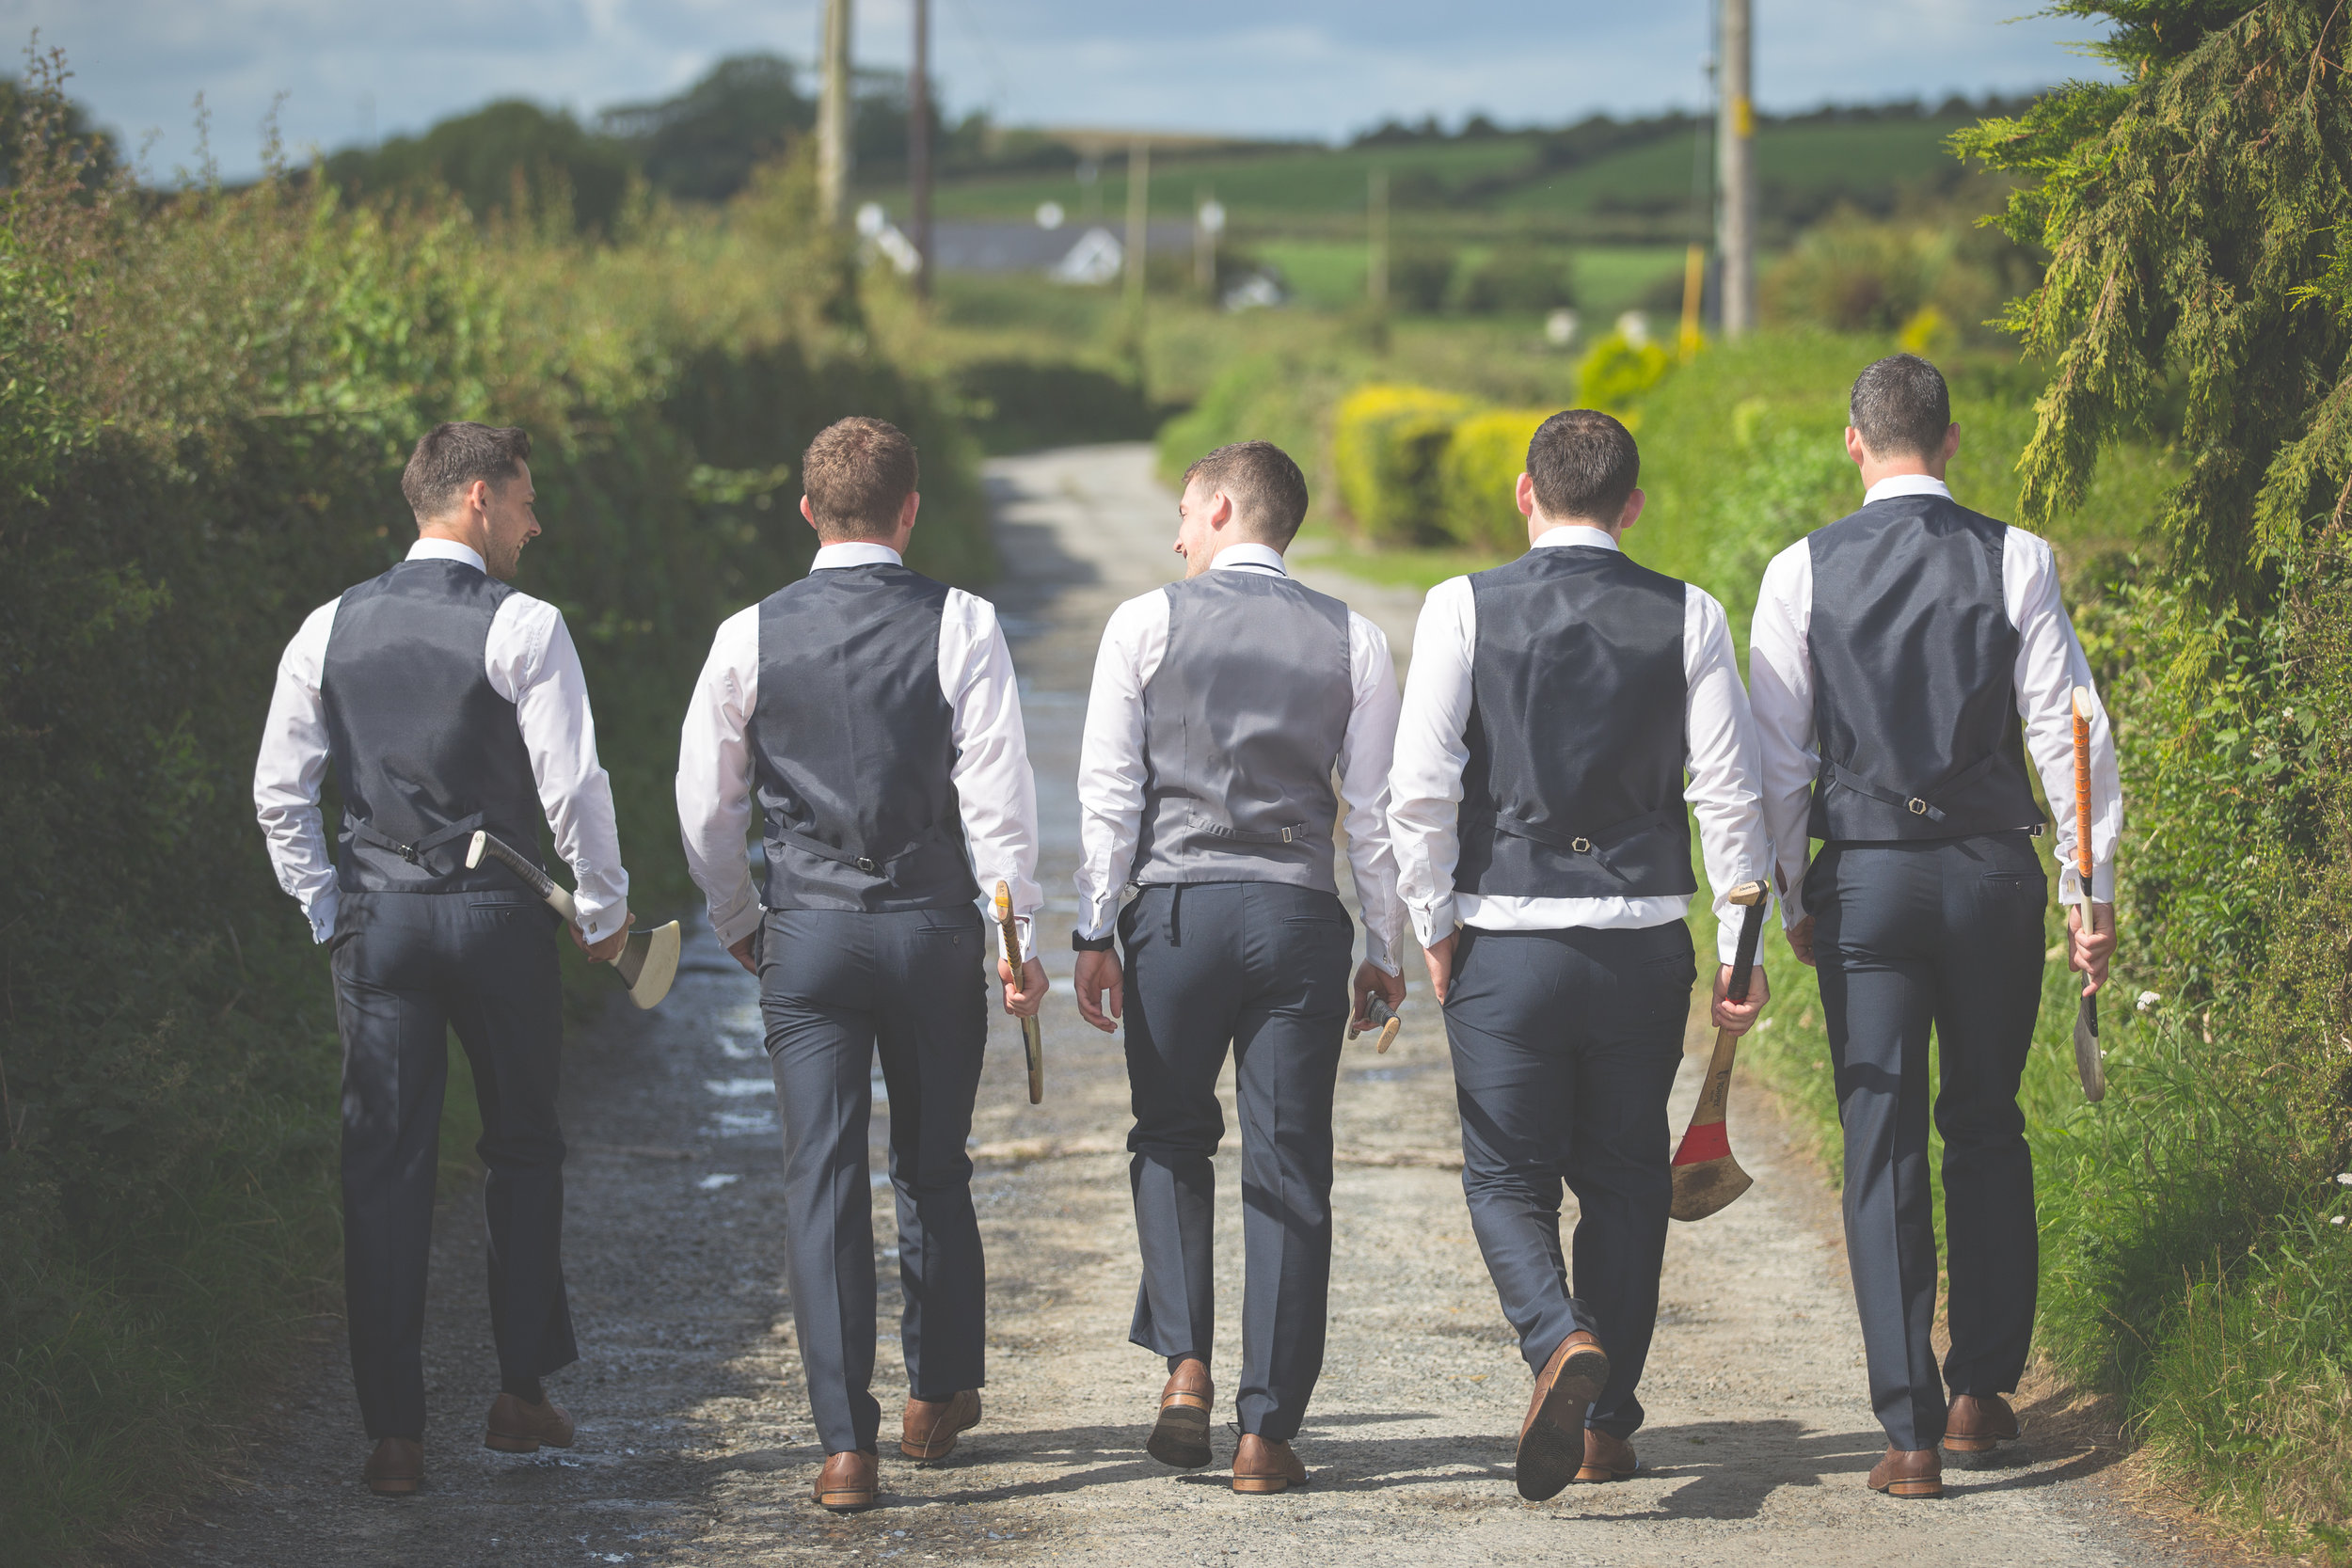 Brian McEwan Wedding Photography | Carol-Anne & Sean | Groom & Groomsmen-52.jpg